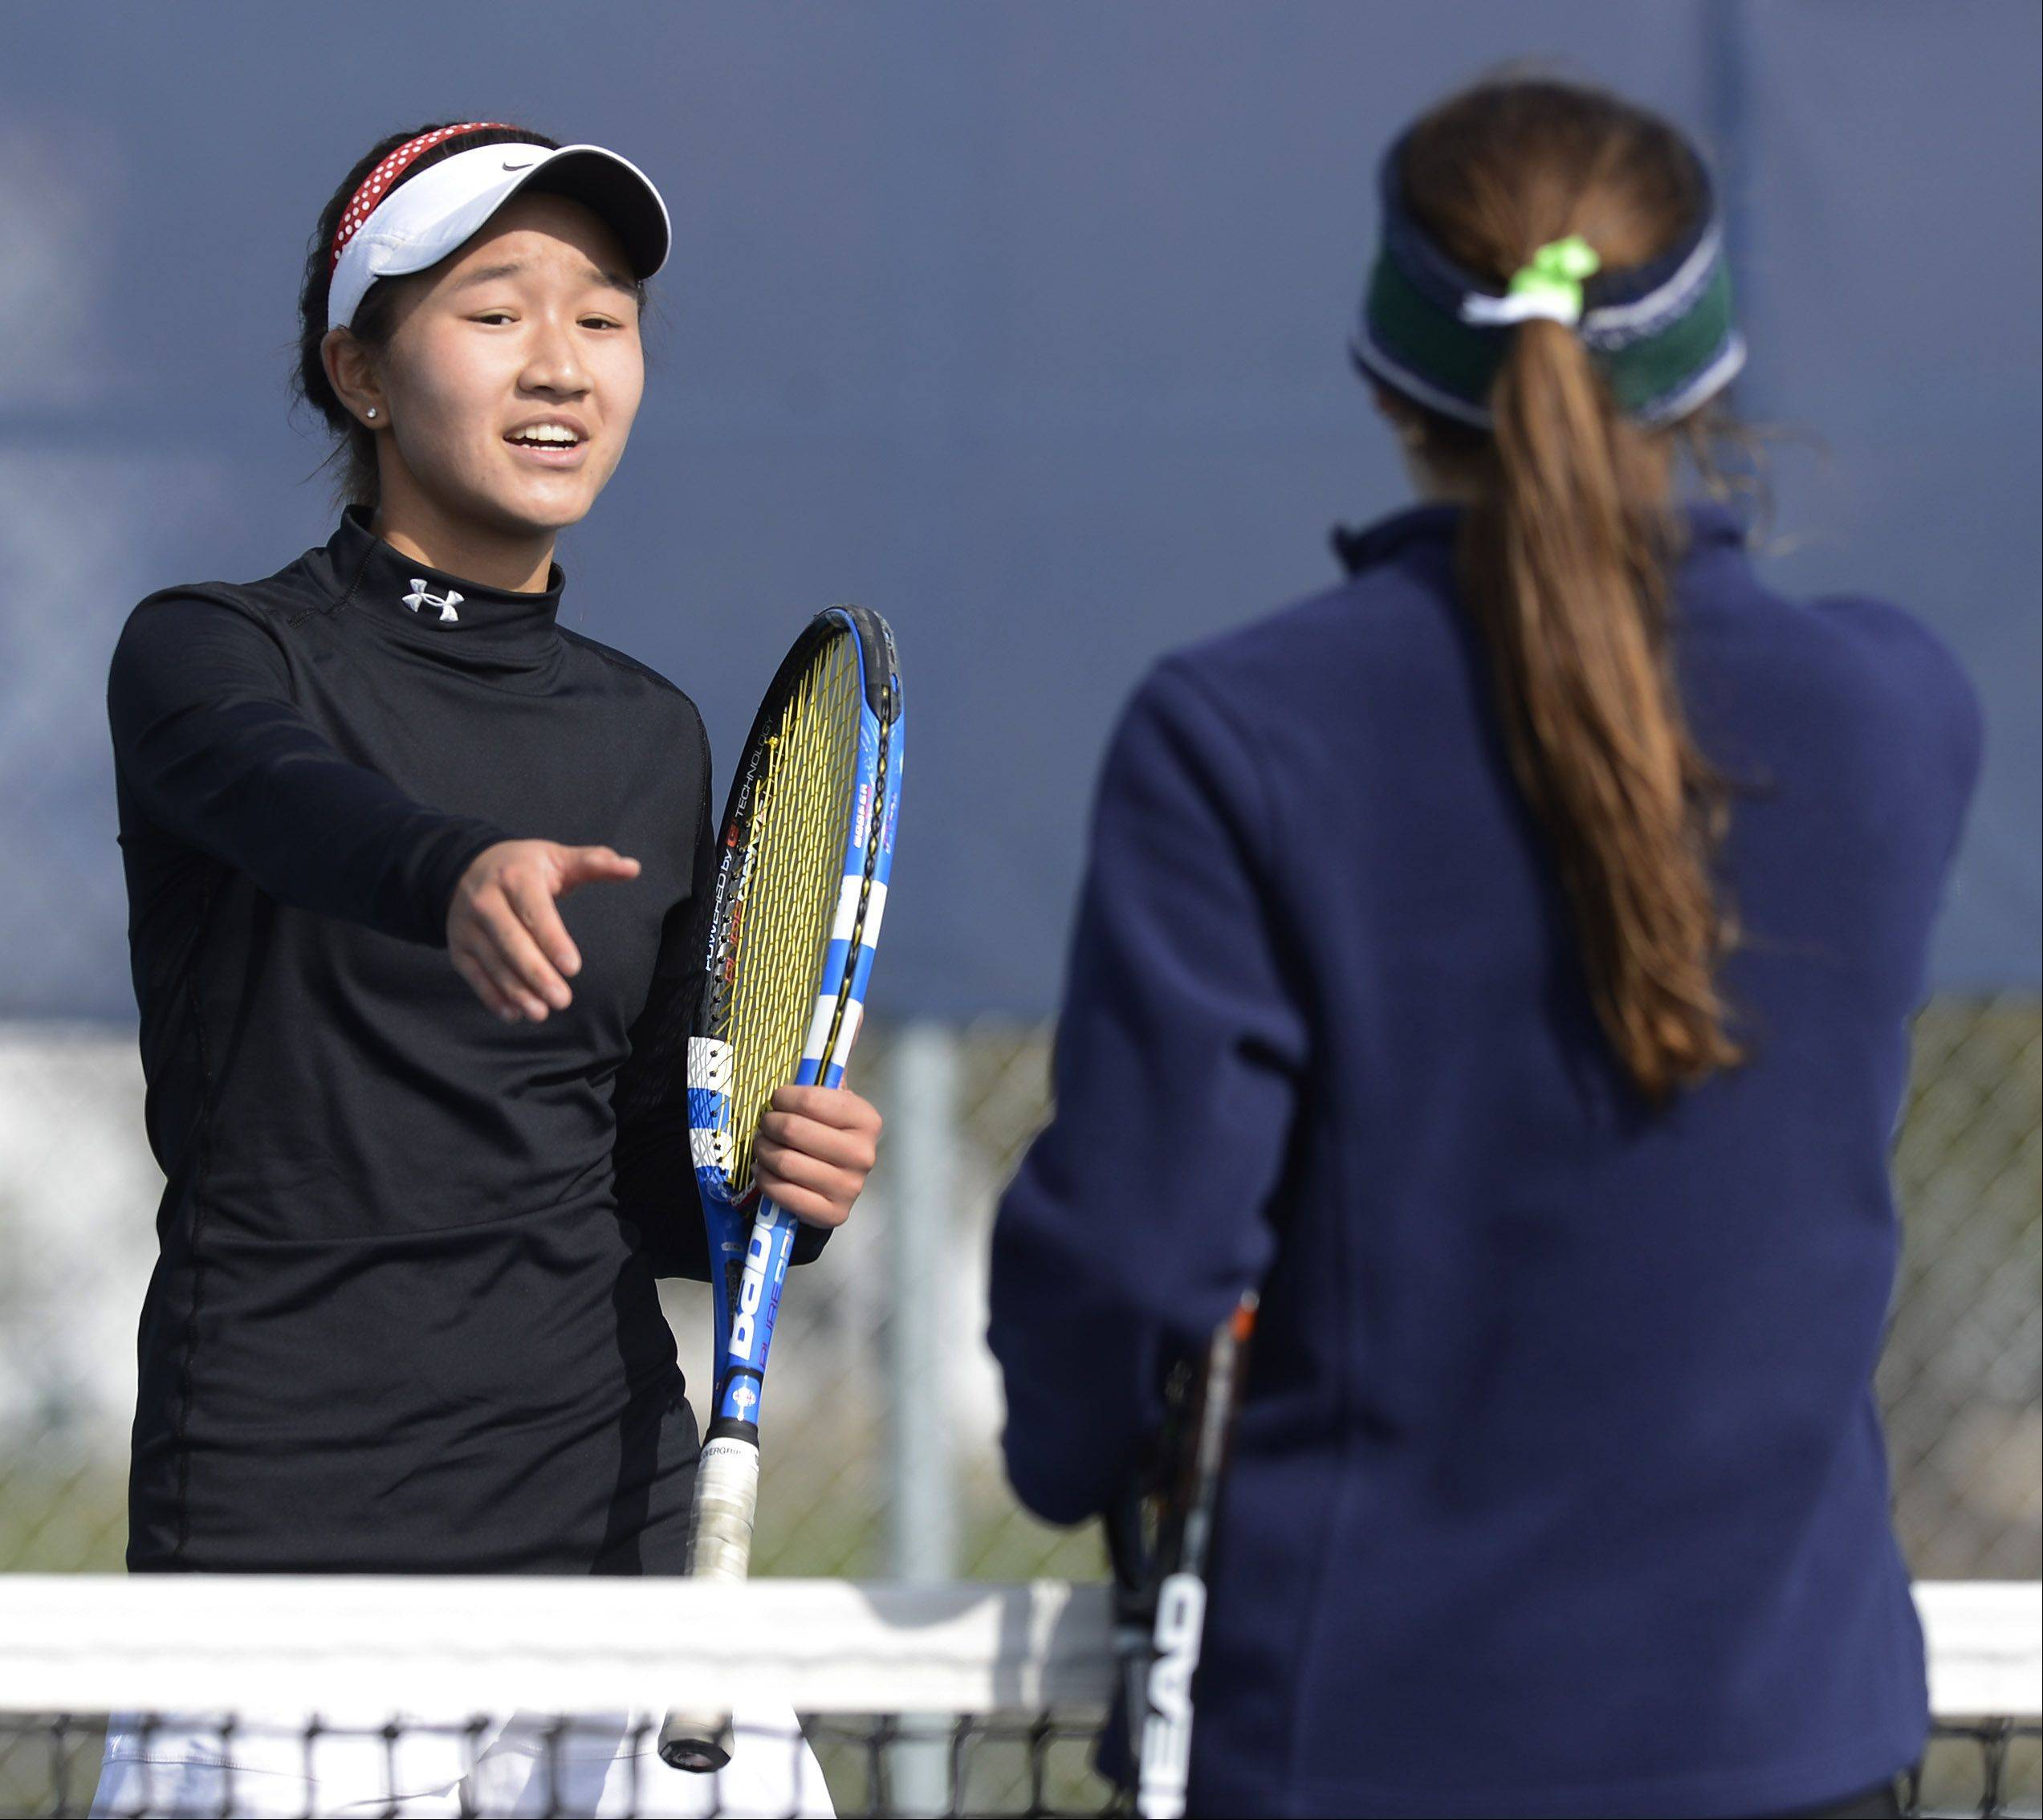 Naperville Central�s Tiffany Chen shakes hands with her opponent, Carol Finke of New Trier, after winning 6-2, 3-6, 7-5 during the girls state tennis semifinals at Buffalo Grove High School Saturday.